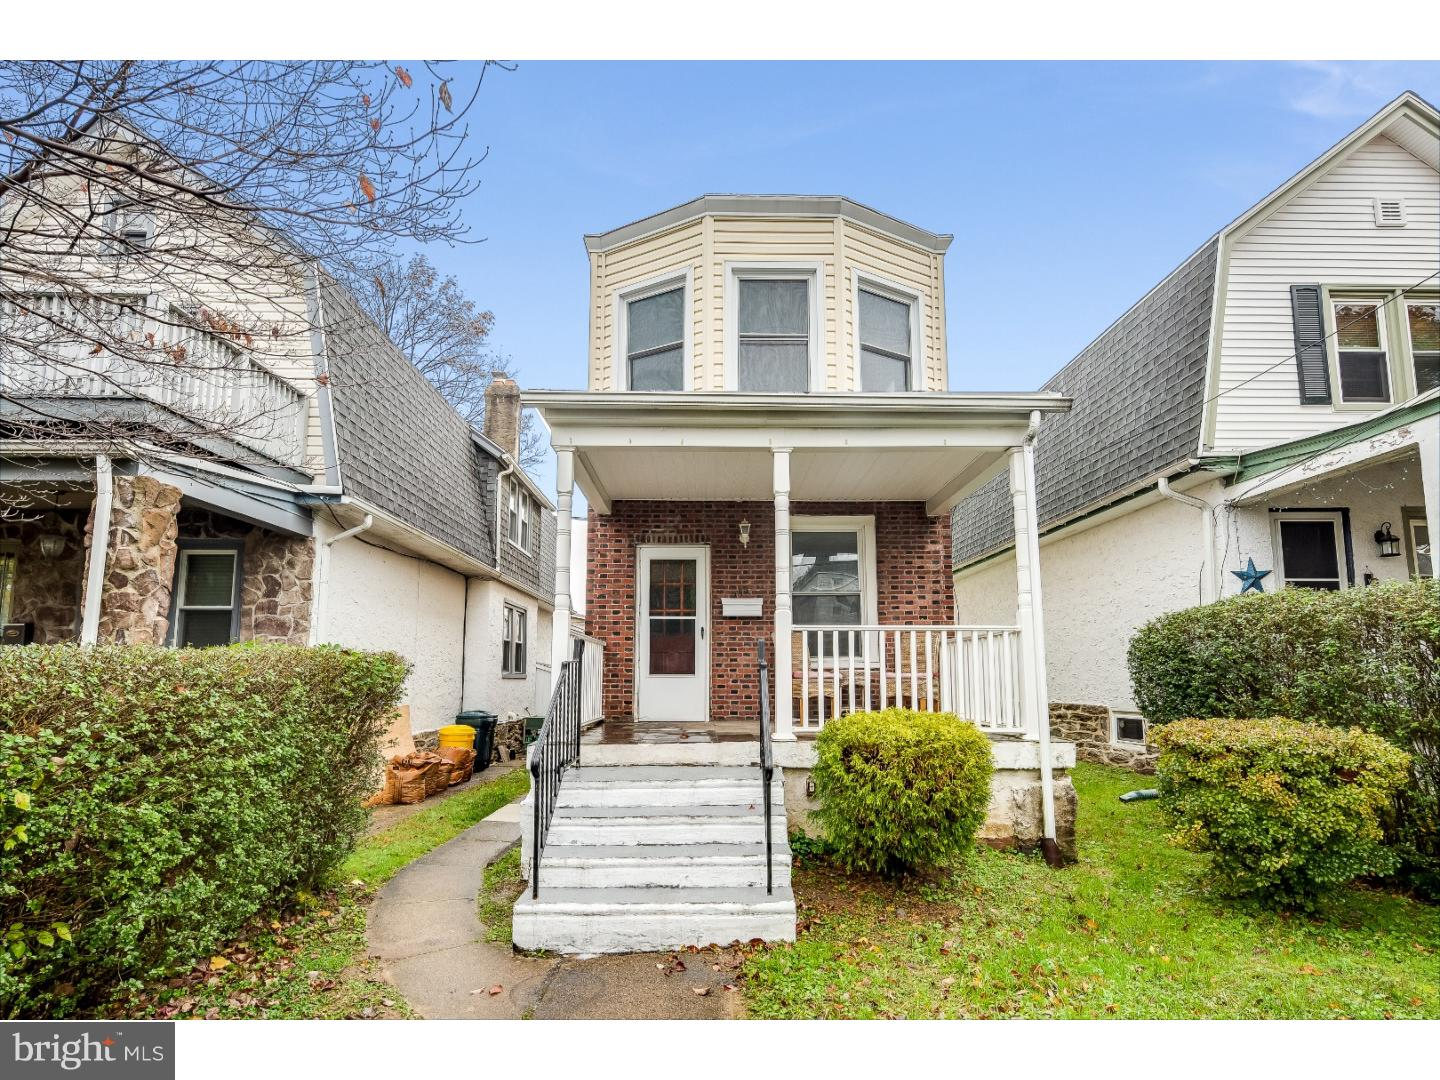 243 Iona Avenue Narberth, PA 19072